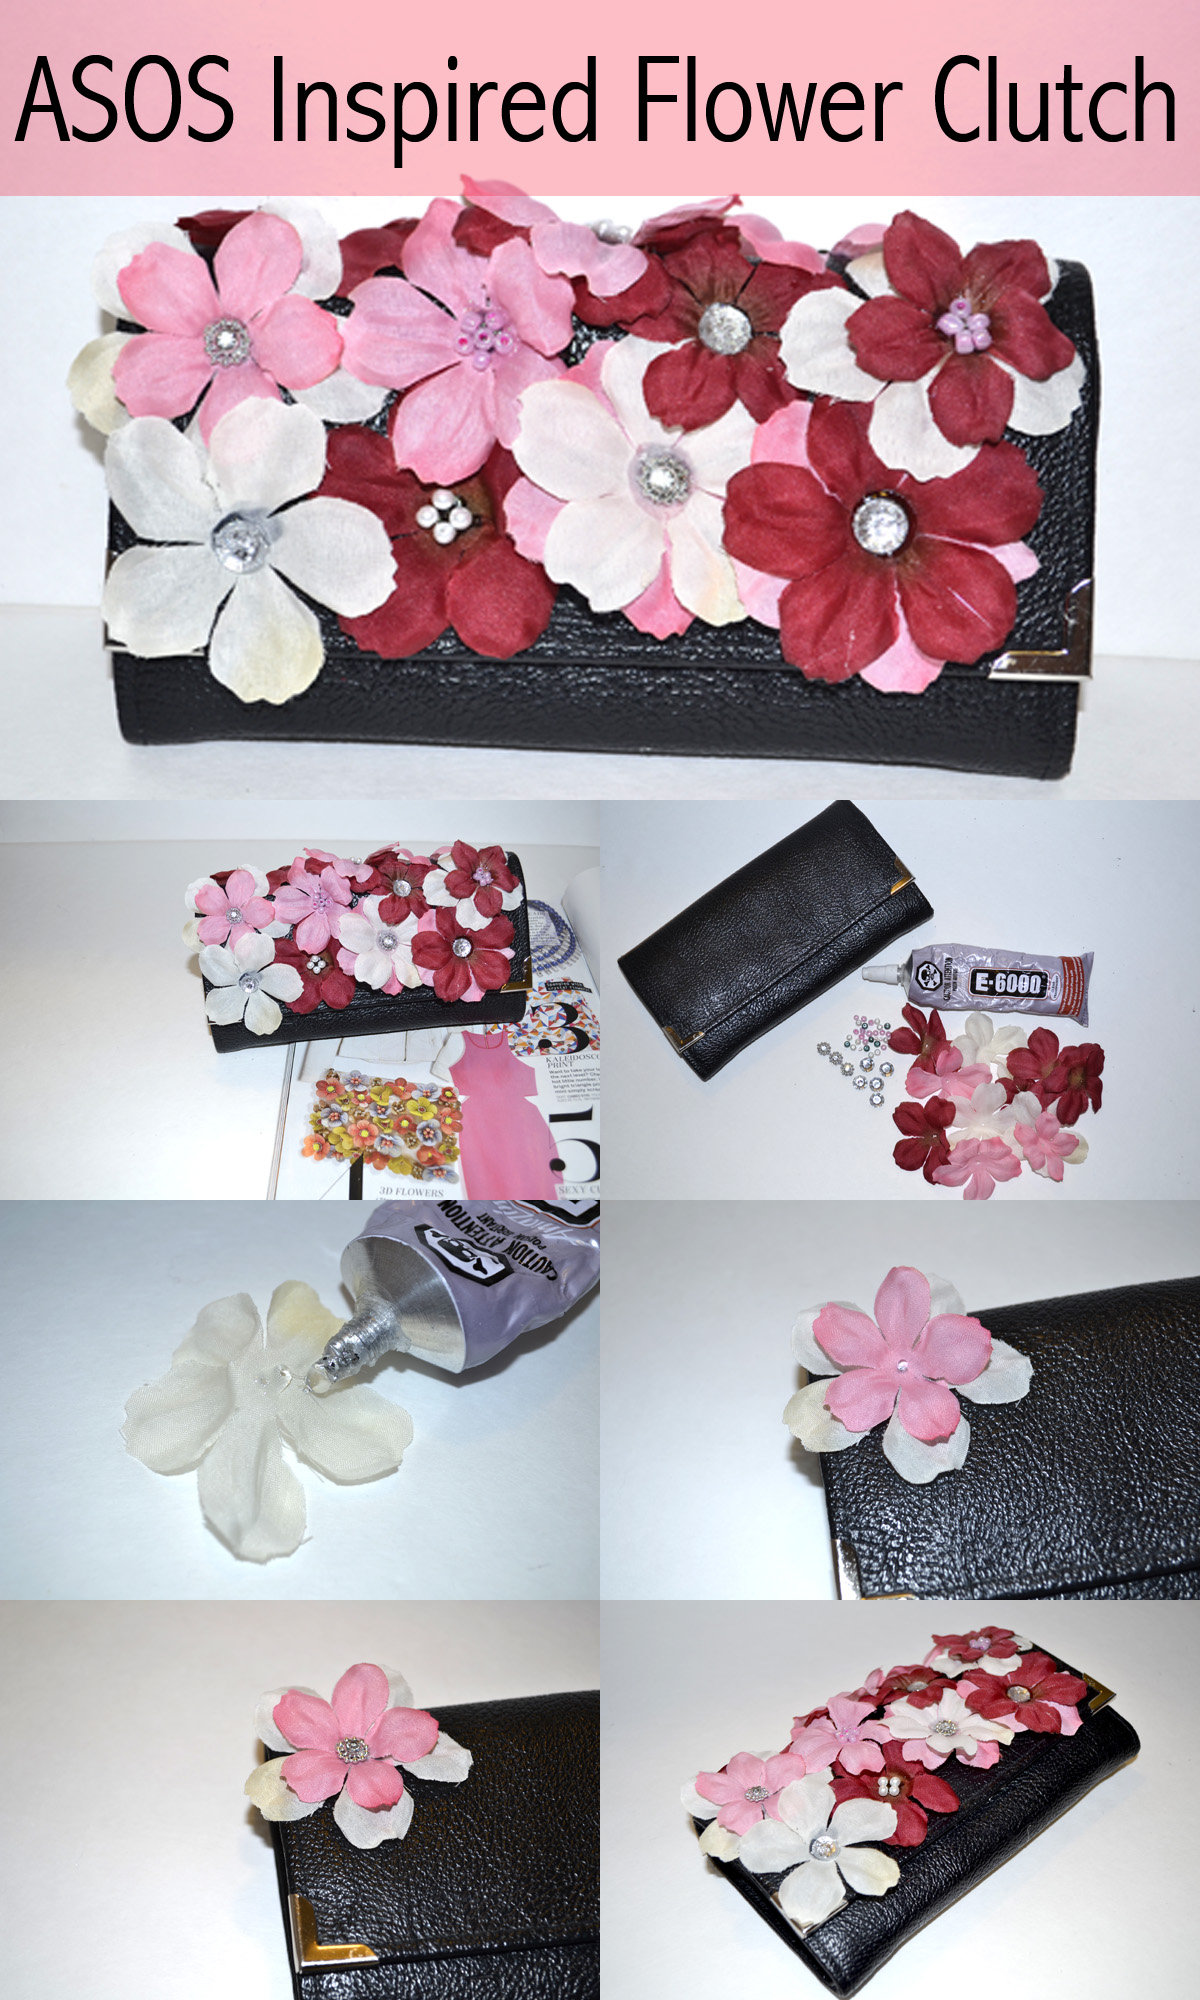 asos-flower-clutch-diy